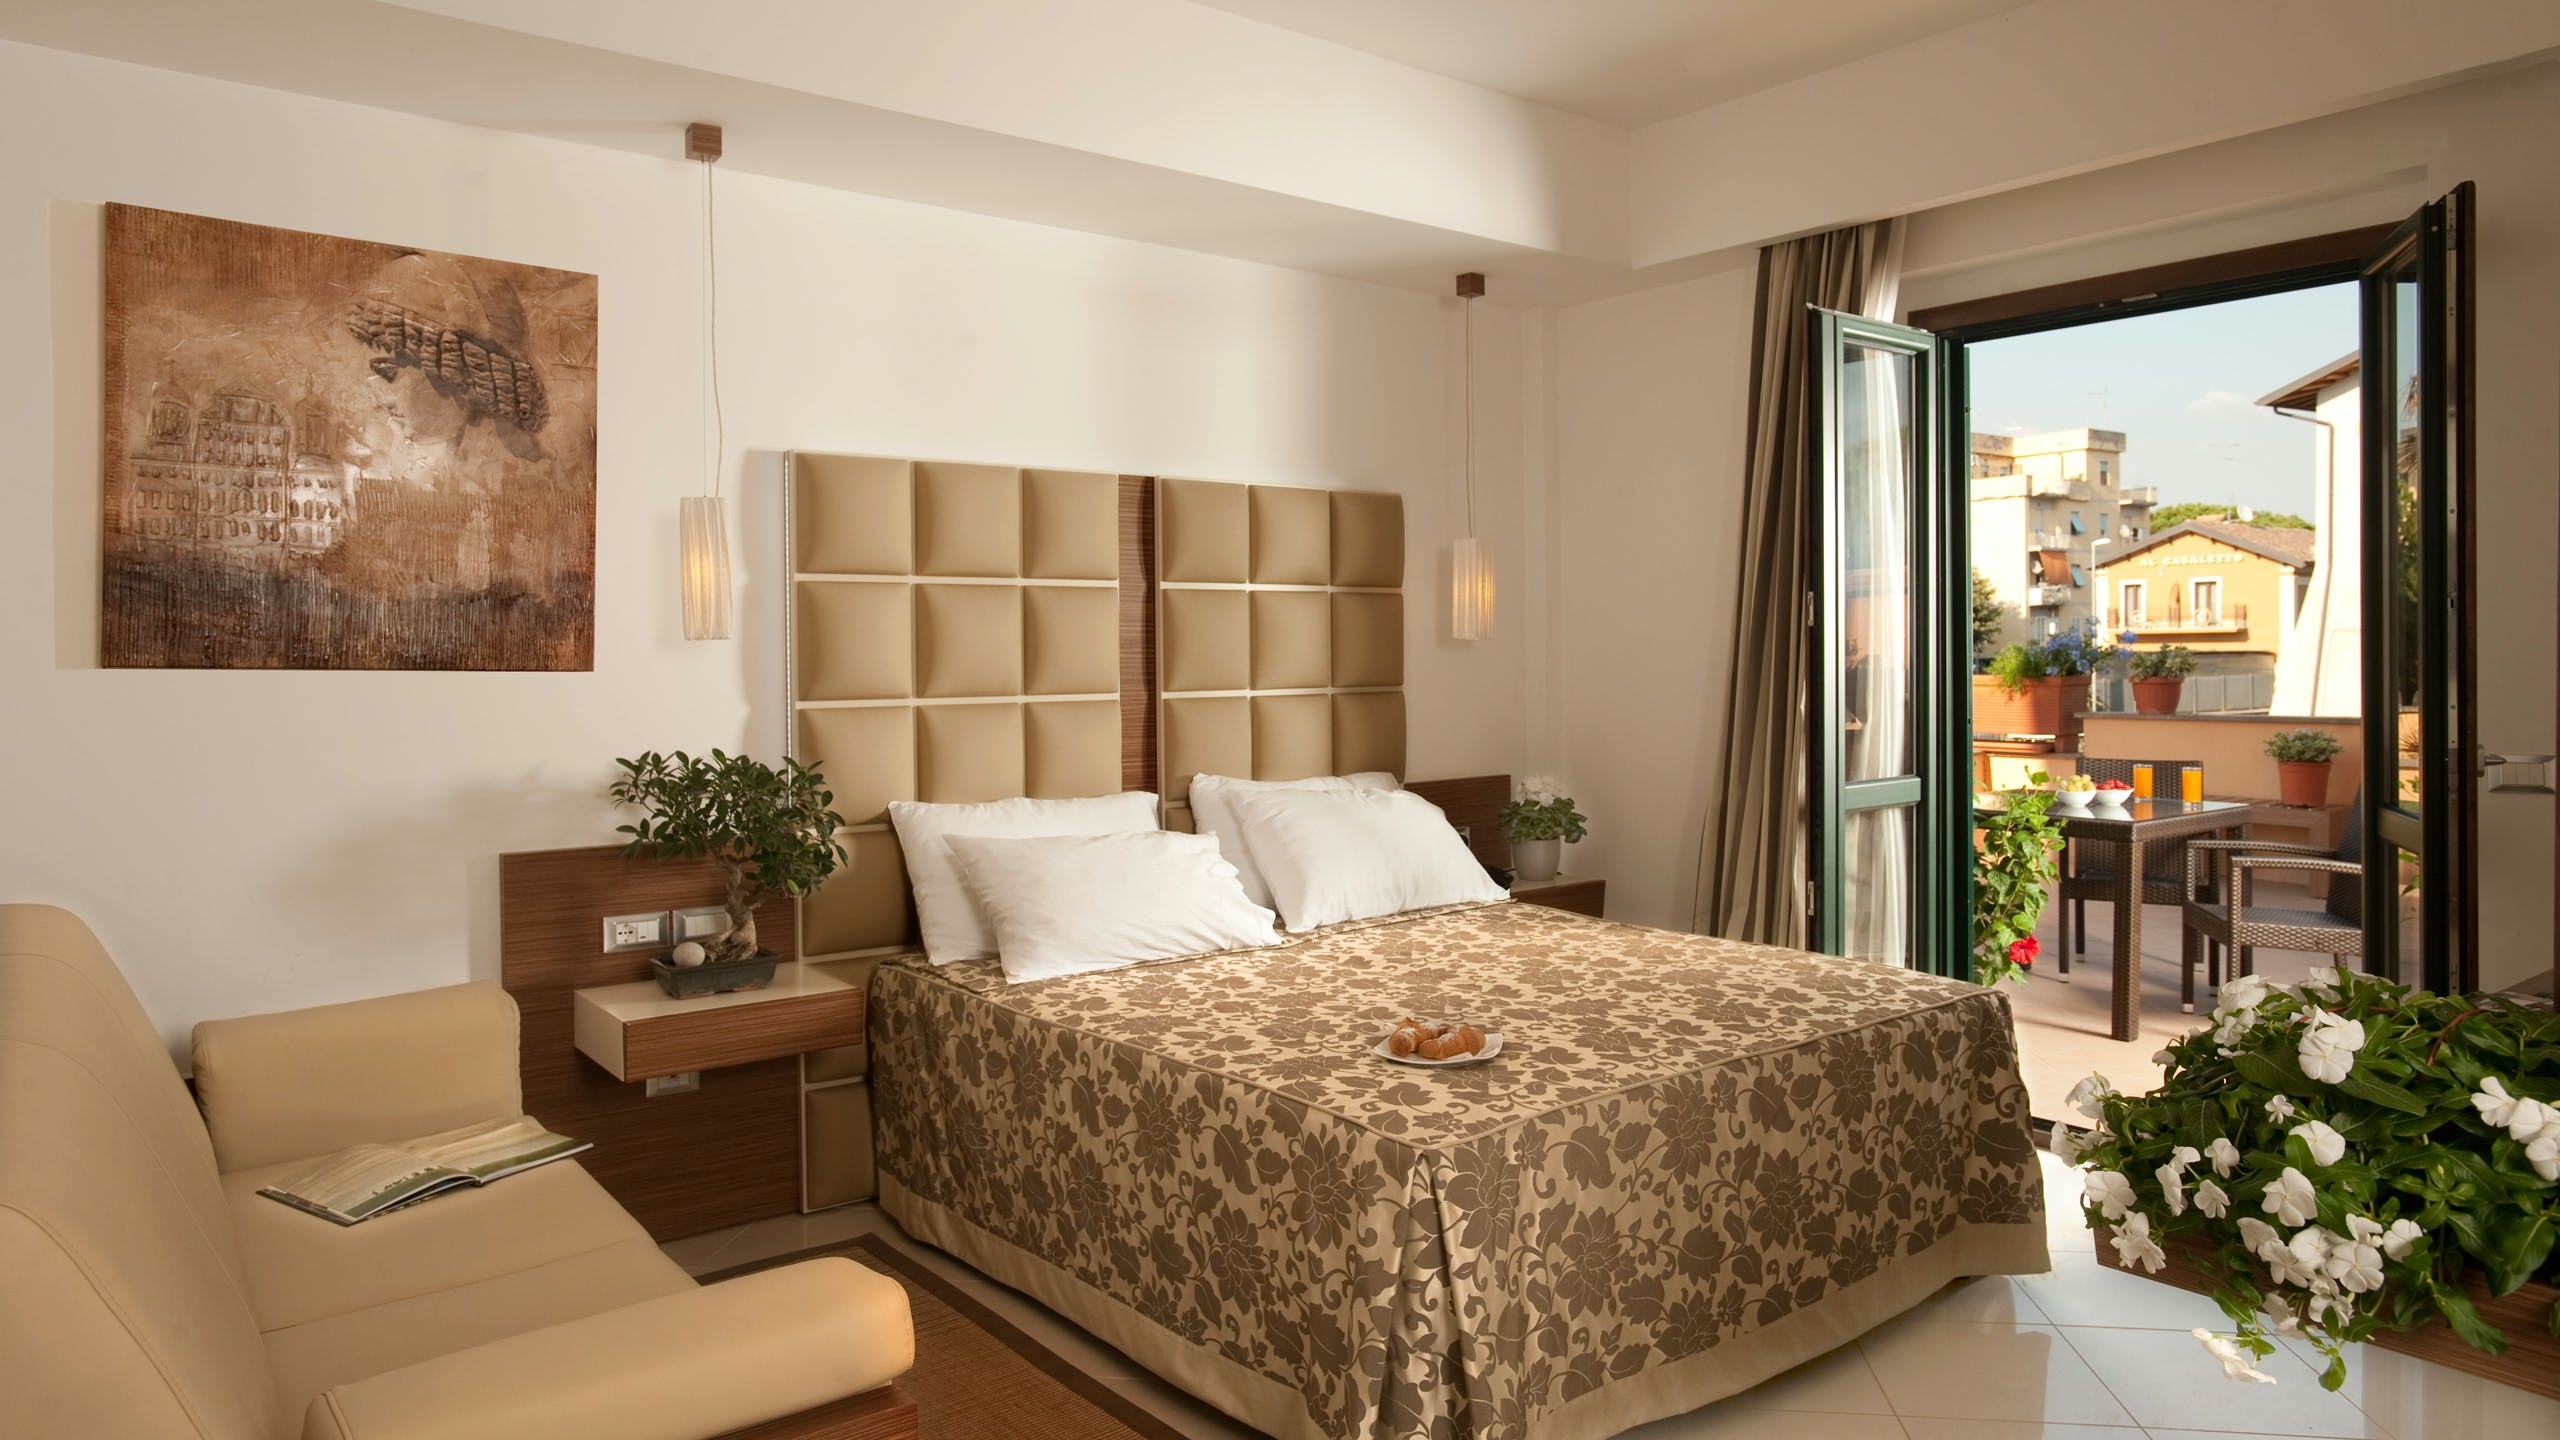 oc-hotel-rome-rooms-0009